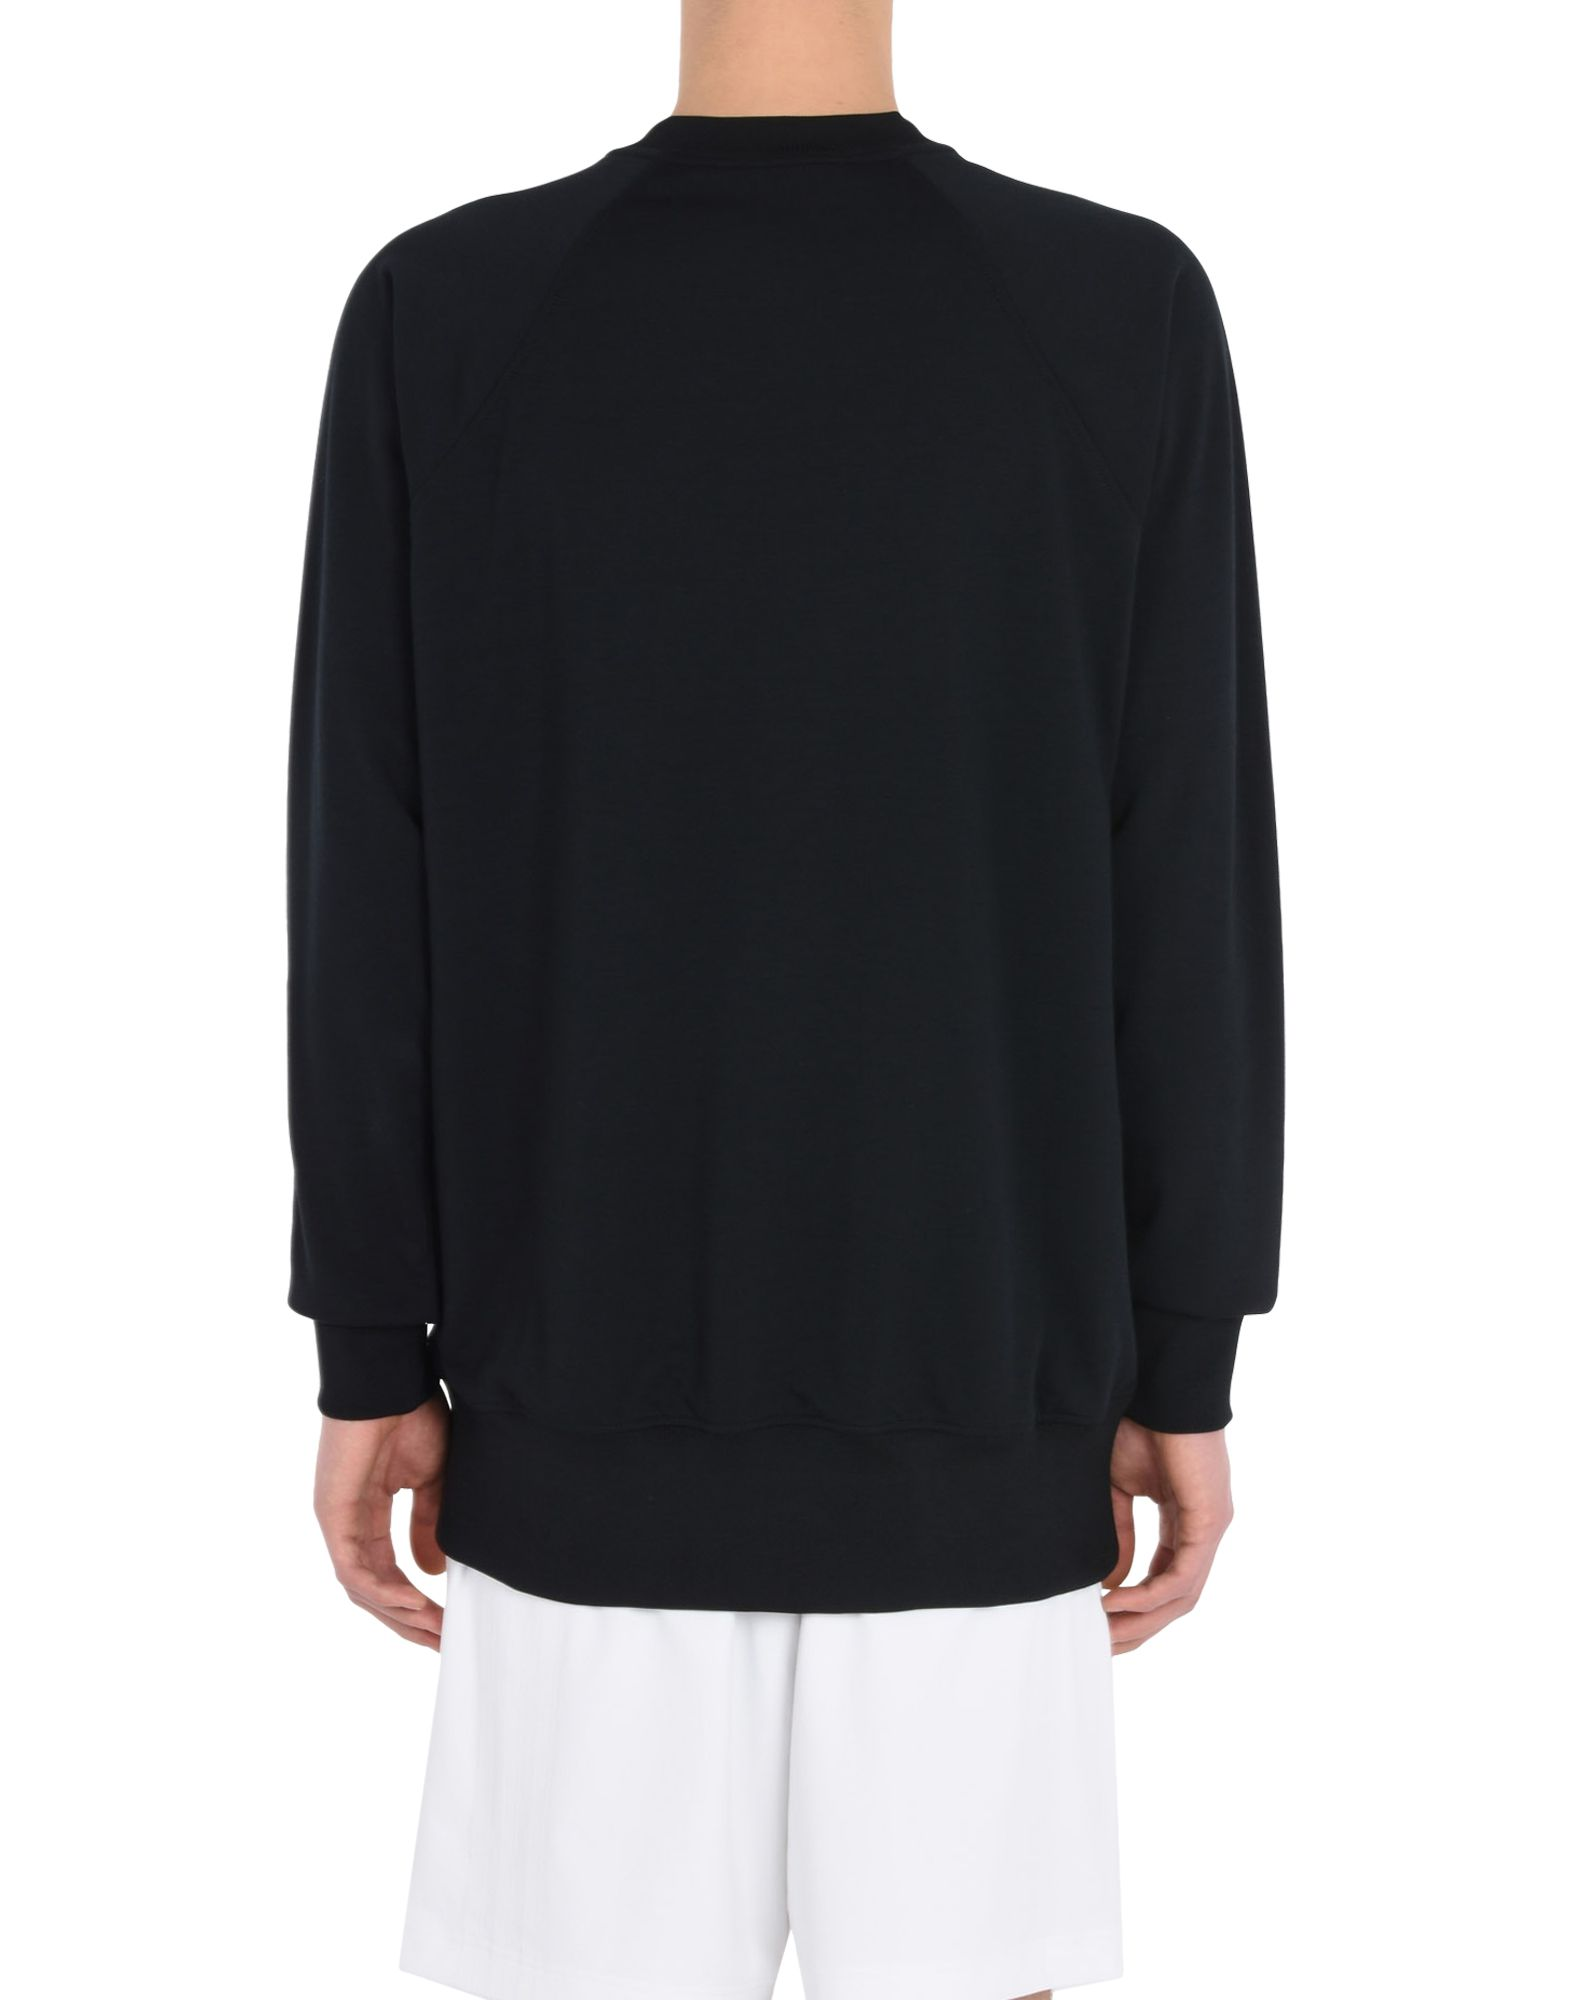 Y-3 Y-3 FRENCH TERRY SWEATER Sweatshirt Man e